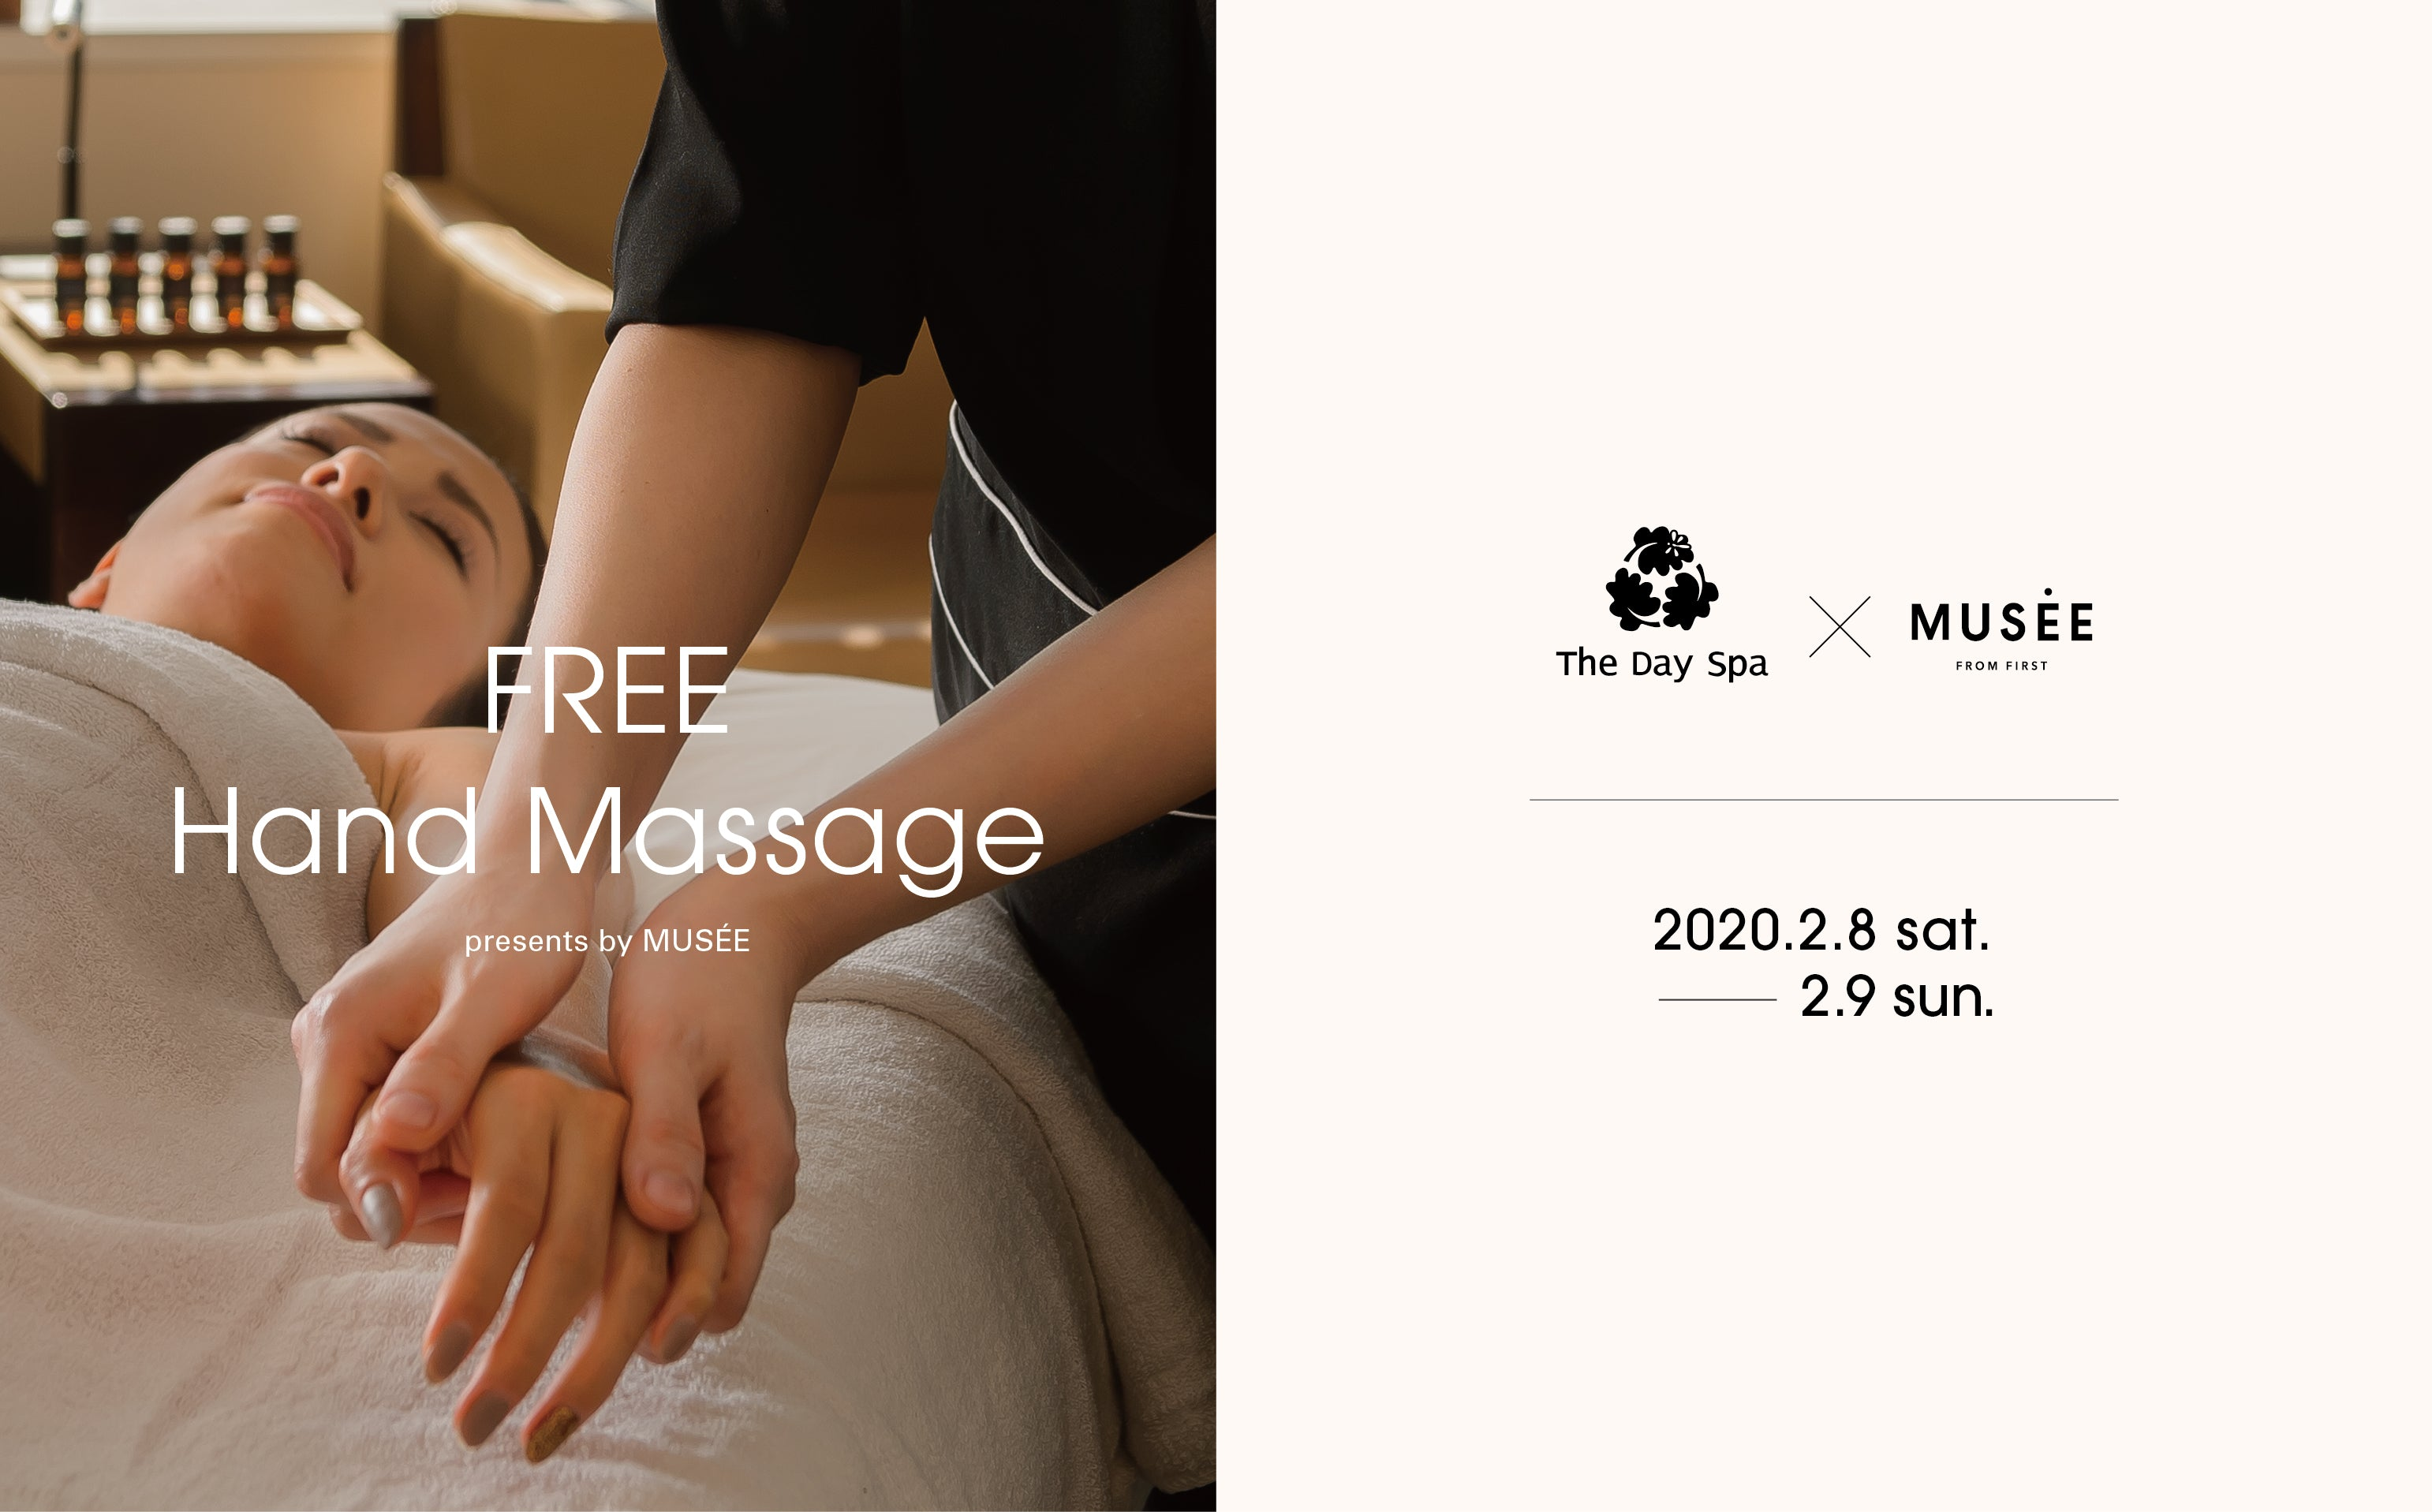 The Day Spa FREE Hand Massage